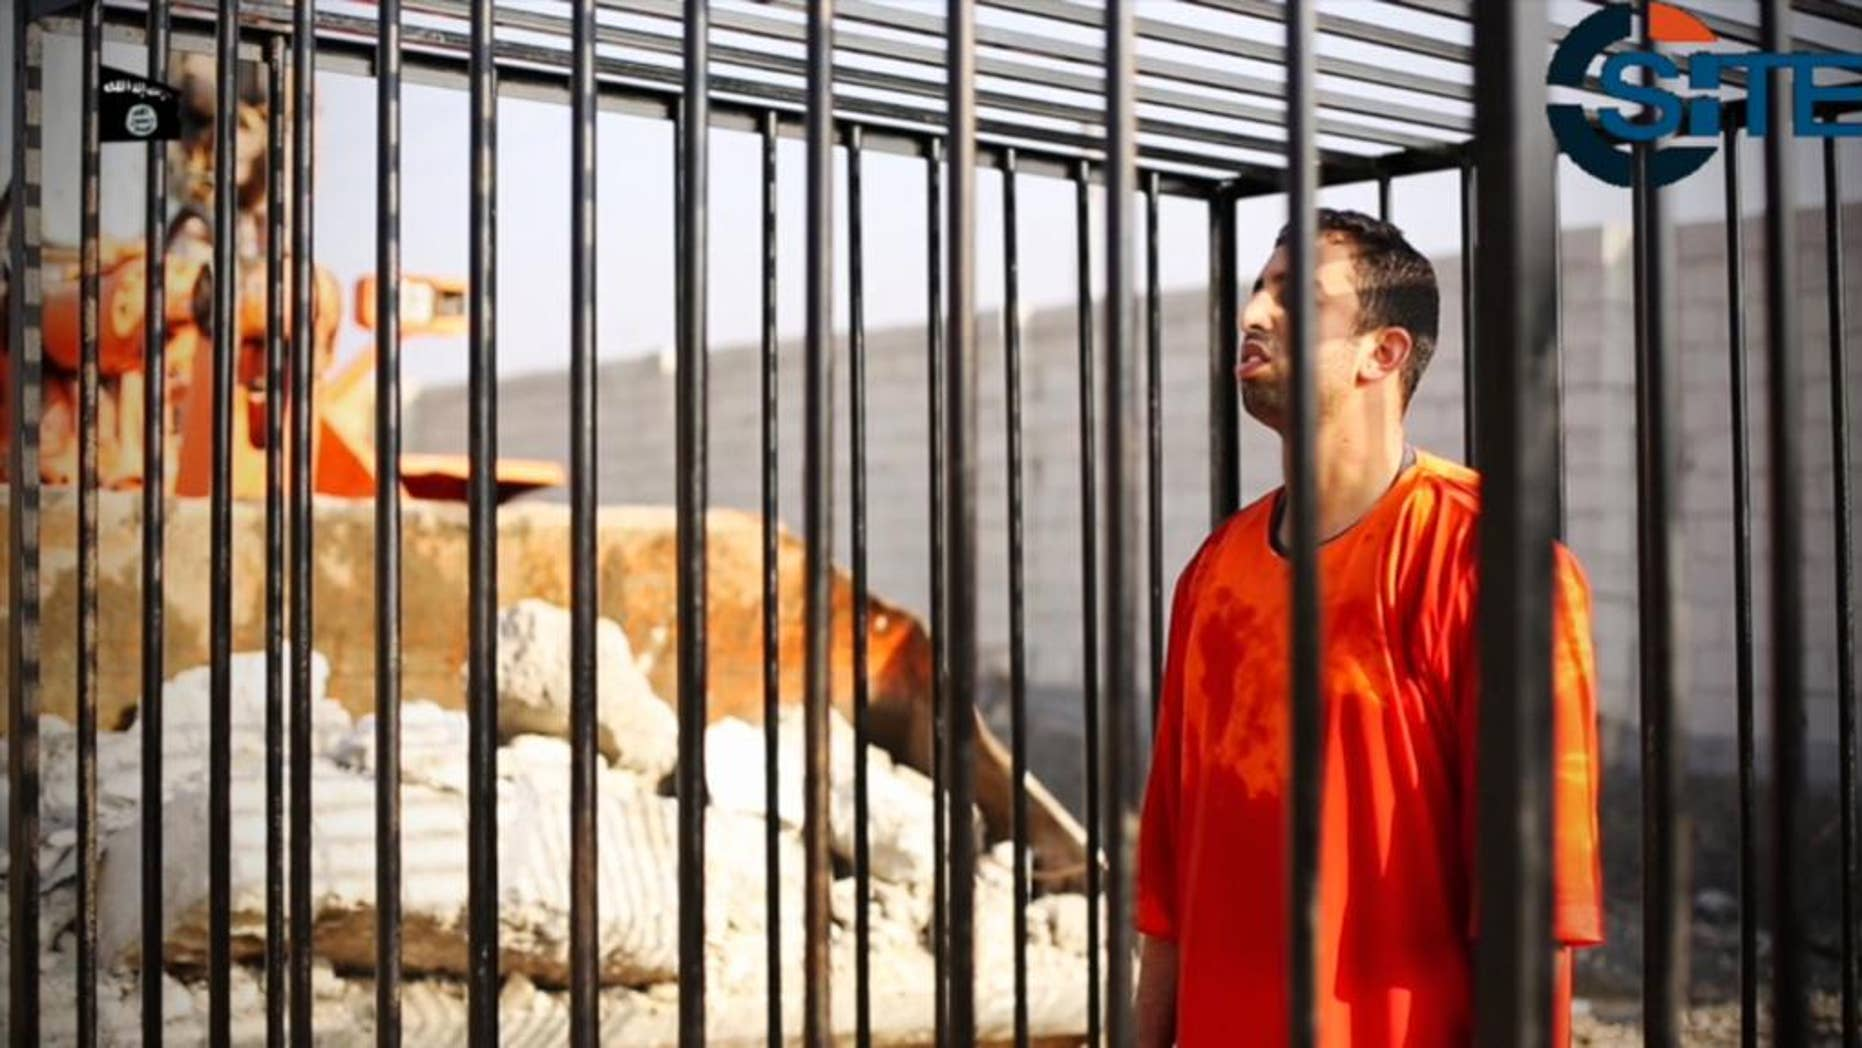 FILE - This still image made from video released by Islamic State group militants and posted on the website of the SITE Intelligence Group in this Tuesday, Feb. 3, 2015 file photo, purportedly shows Jordanian pilot Lt. Muath al-Kaseasbeh standing in a cage just before being burned to death by his captors. The video featured production techniques used in other clips from the militants. But unlike those that showed beheadings in which the hostages or their killer delivered a message before being killed, the pilot video is longer and involves a story-telling narrative and at least four cameras, along with advanced editing techniques. The death of the 26-year-old pilot, who fell into the hands of the militants in December when his Jordanian F-16 crashed near Raqqa, Syria, followed a weeklong drama over a possible prisoner exchange. (AP Photo/SITE Intelligence Group, File)